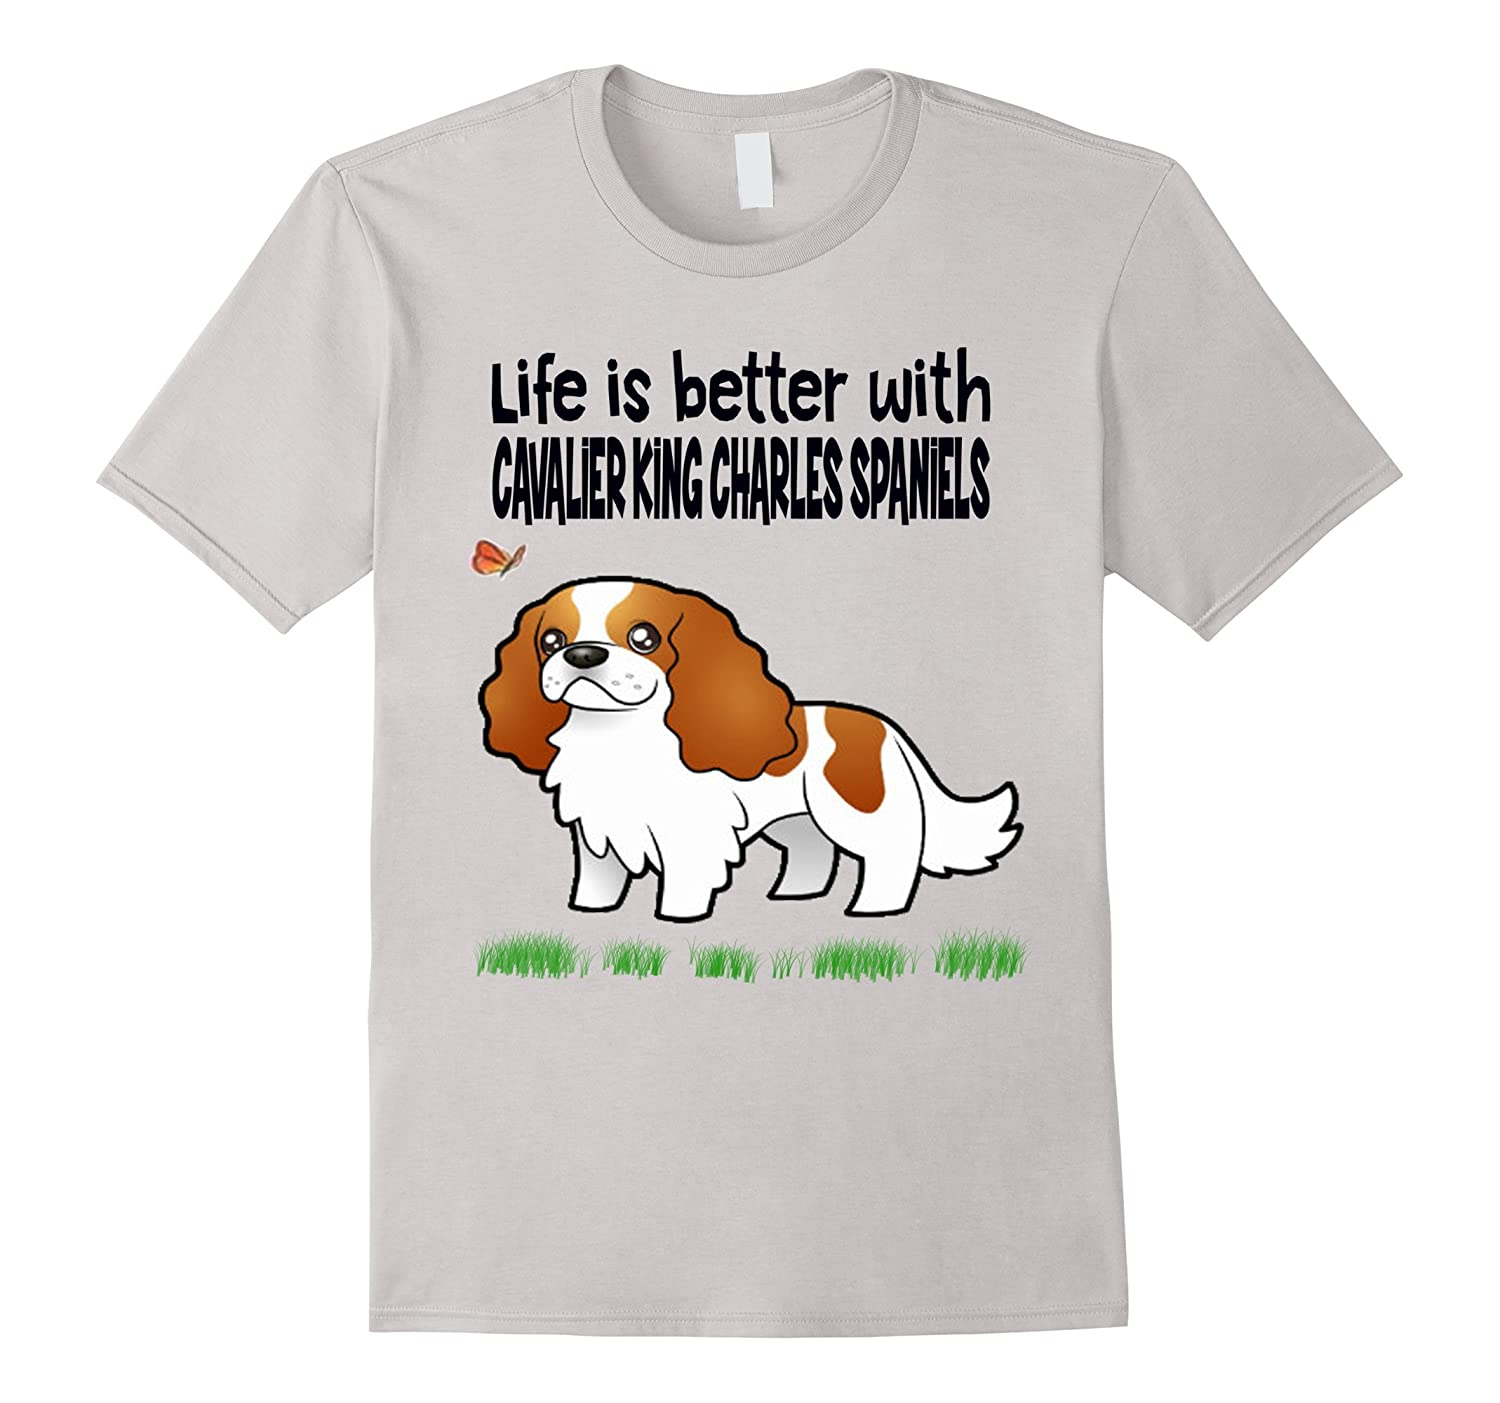 Cavalier King Charles Spaniels gift tShirt for Women and all-CL